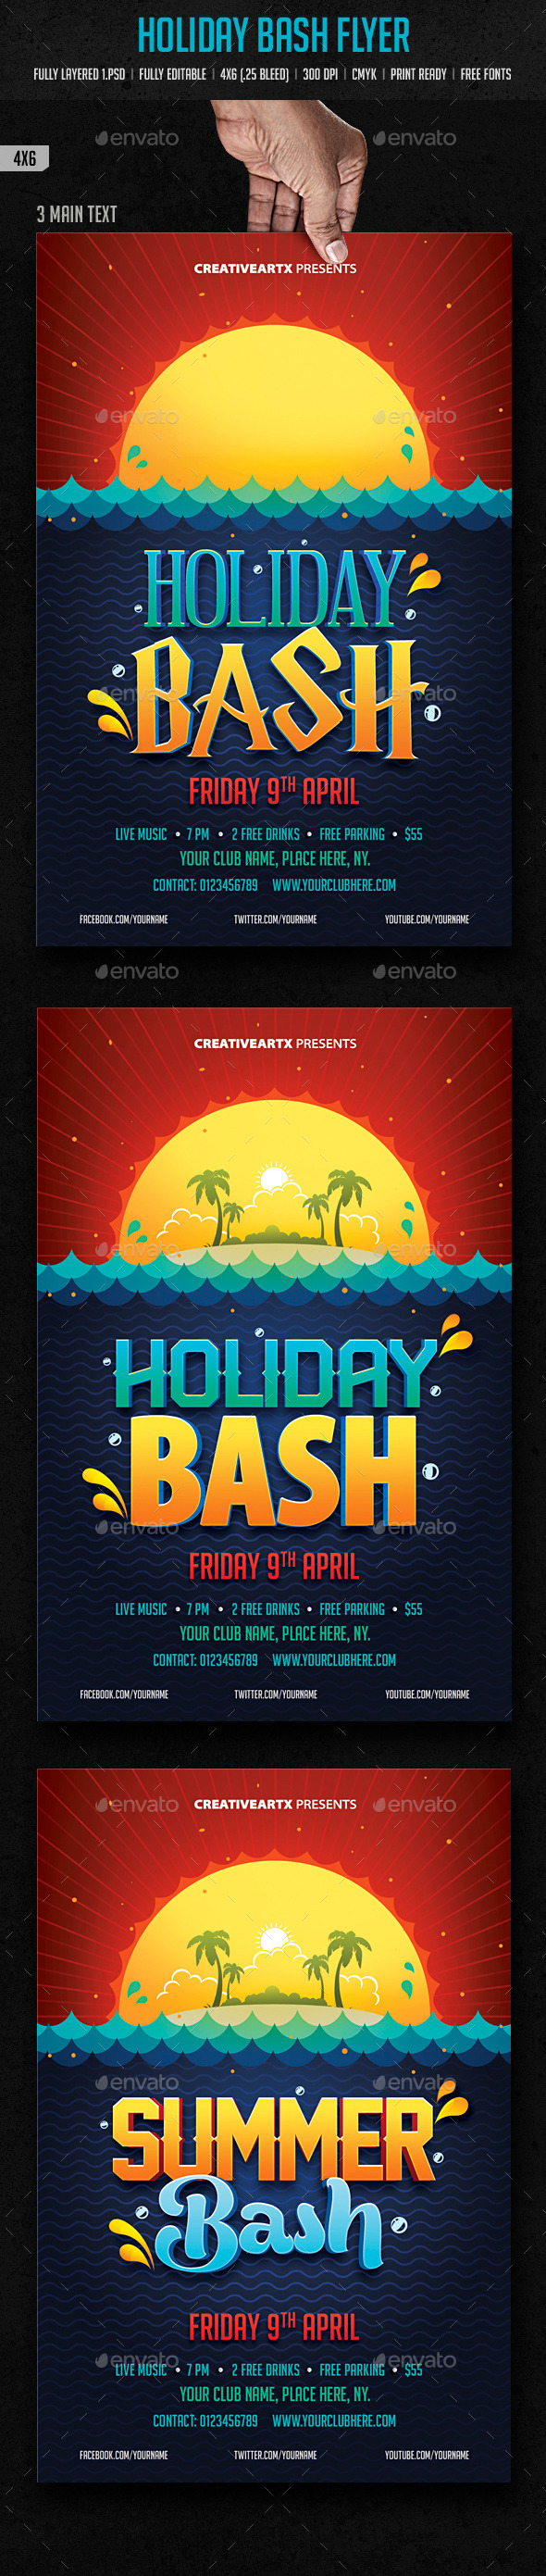 GraphicRiver Holiday Bash Flyer 10160800